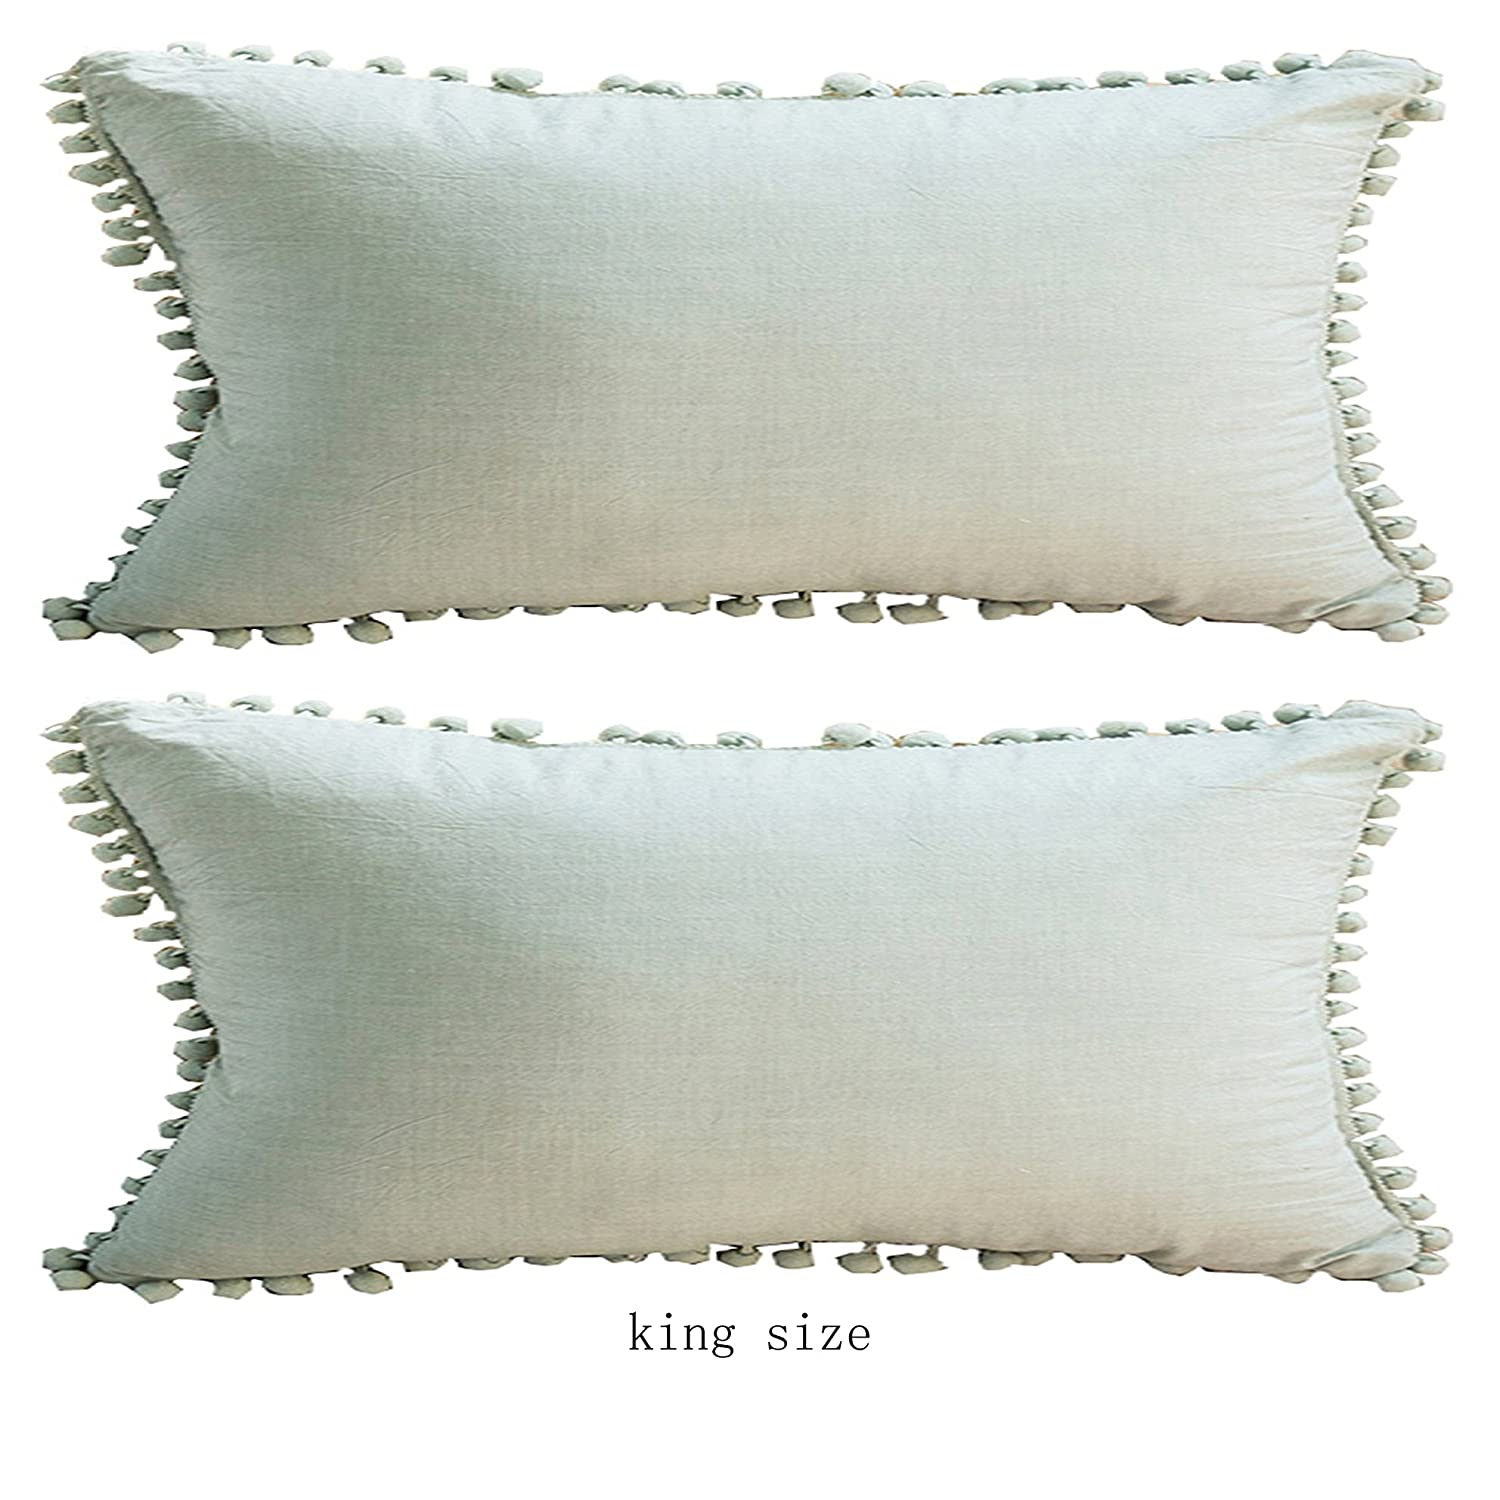 Meaning4 White Cotton Throw Pillow Cases Covers 18x18 inches with Pom Poms 2 Pcs